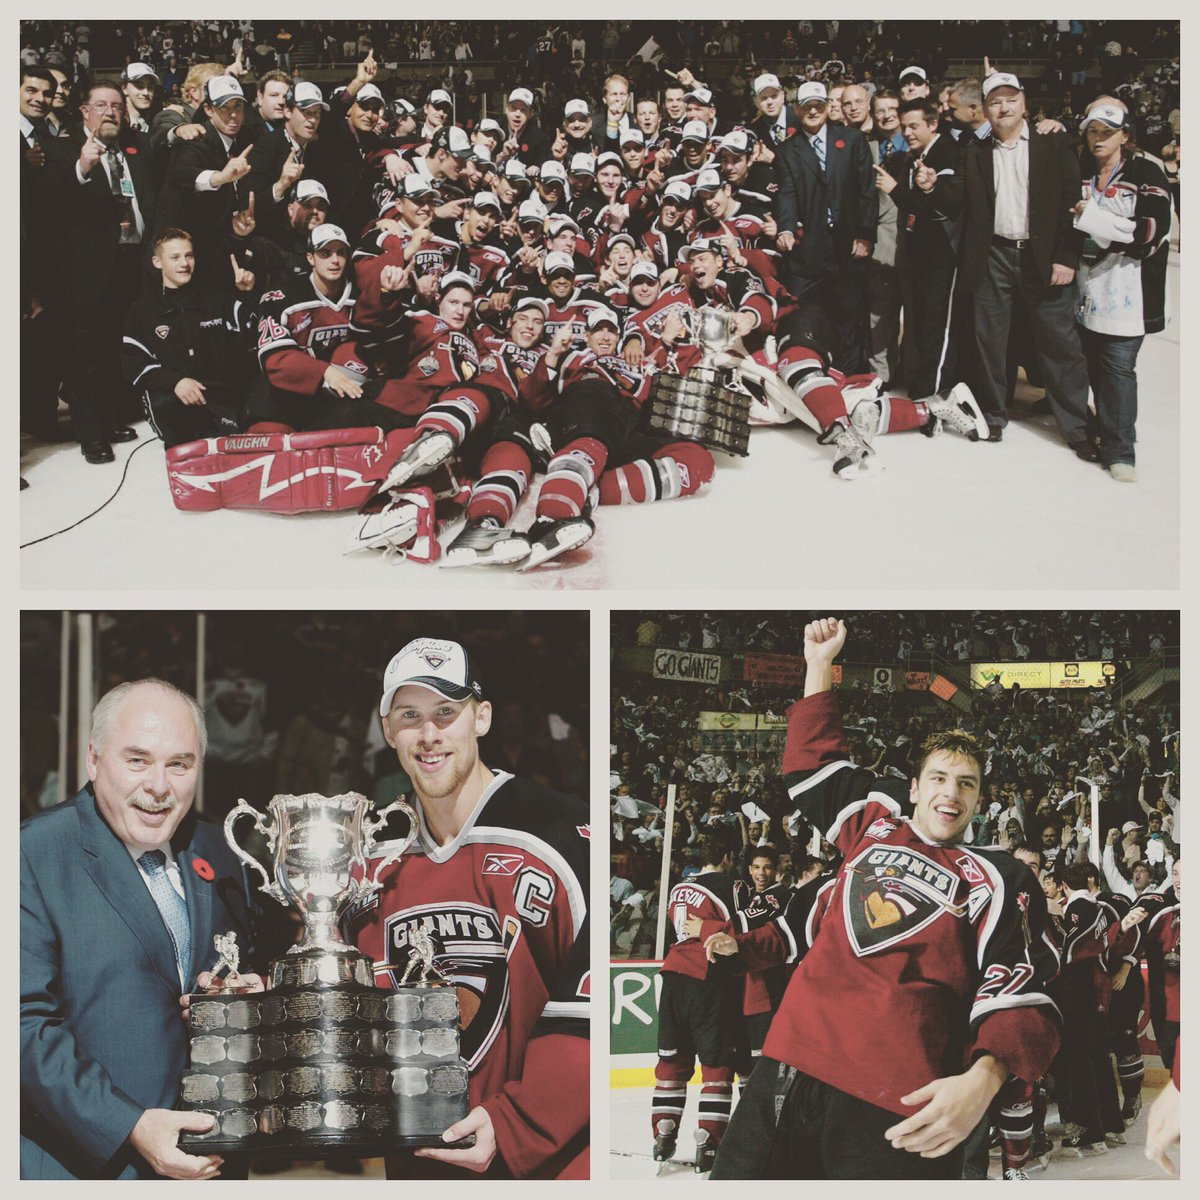 10 years ago today, we reached the top of the mountain! #MemorialCup #...